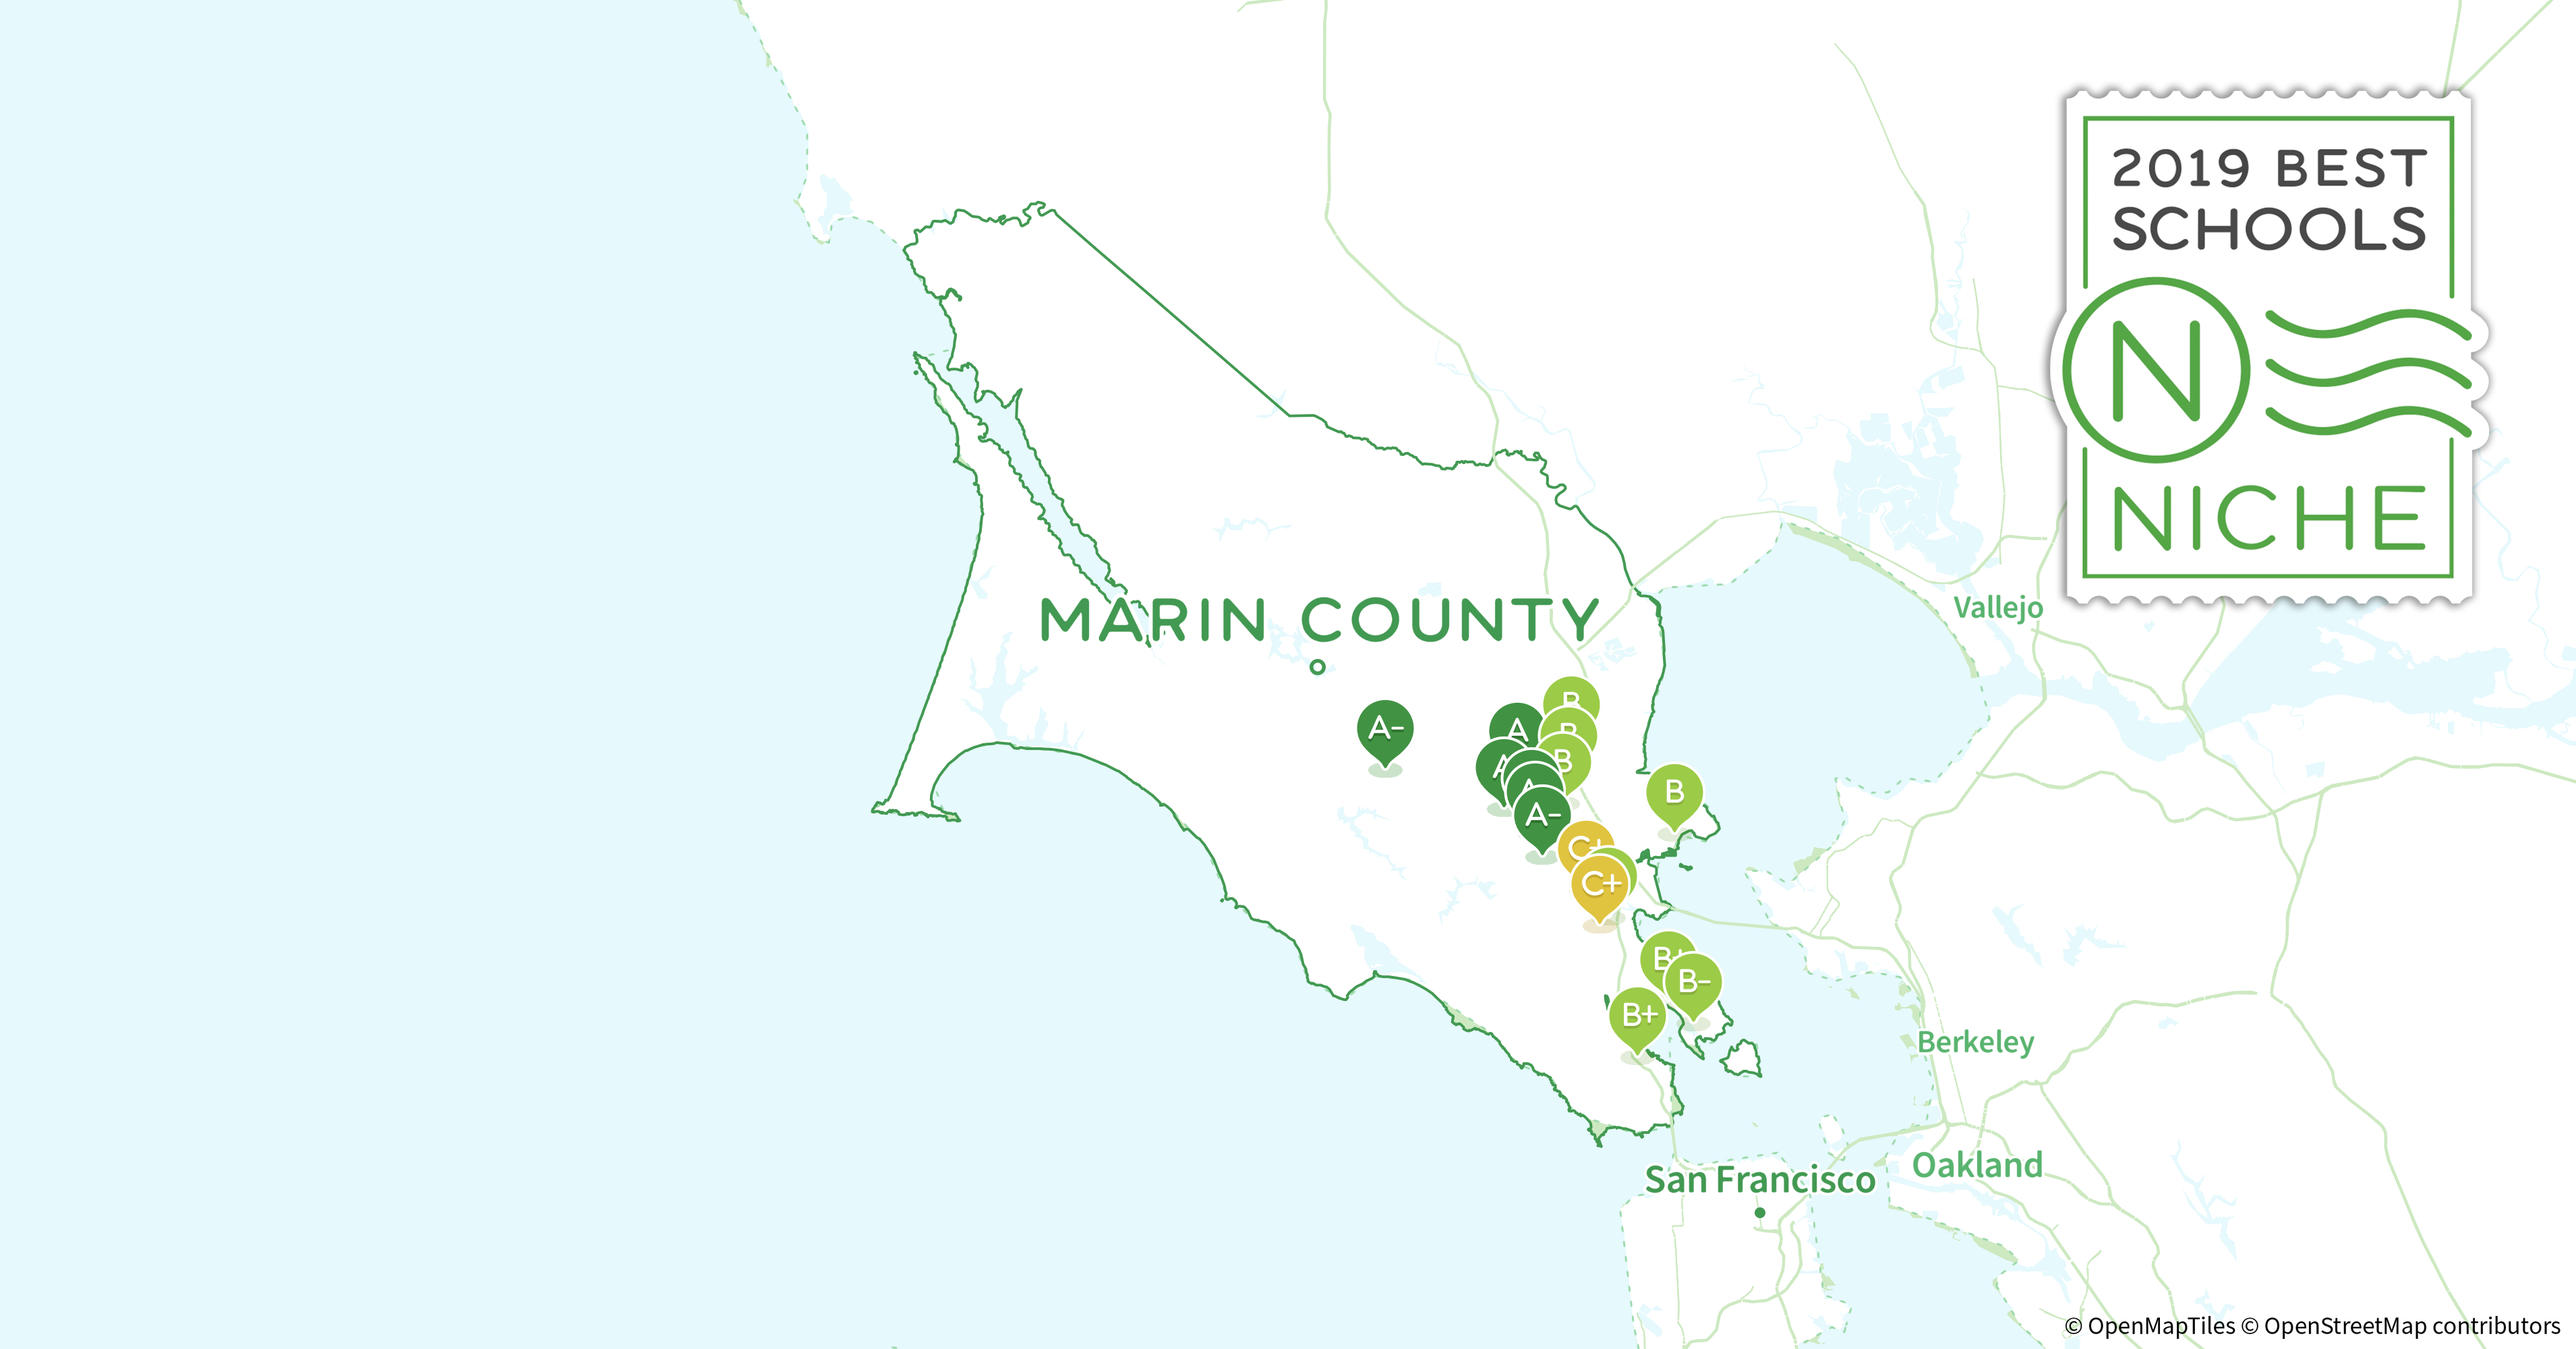 School Districts In Marin County, Ca - Niche - Marin County California Map